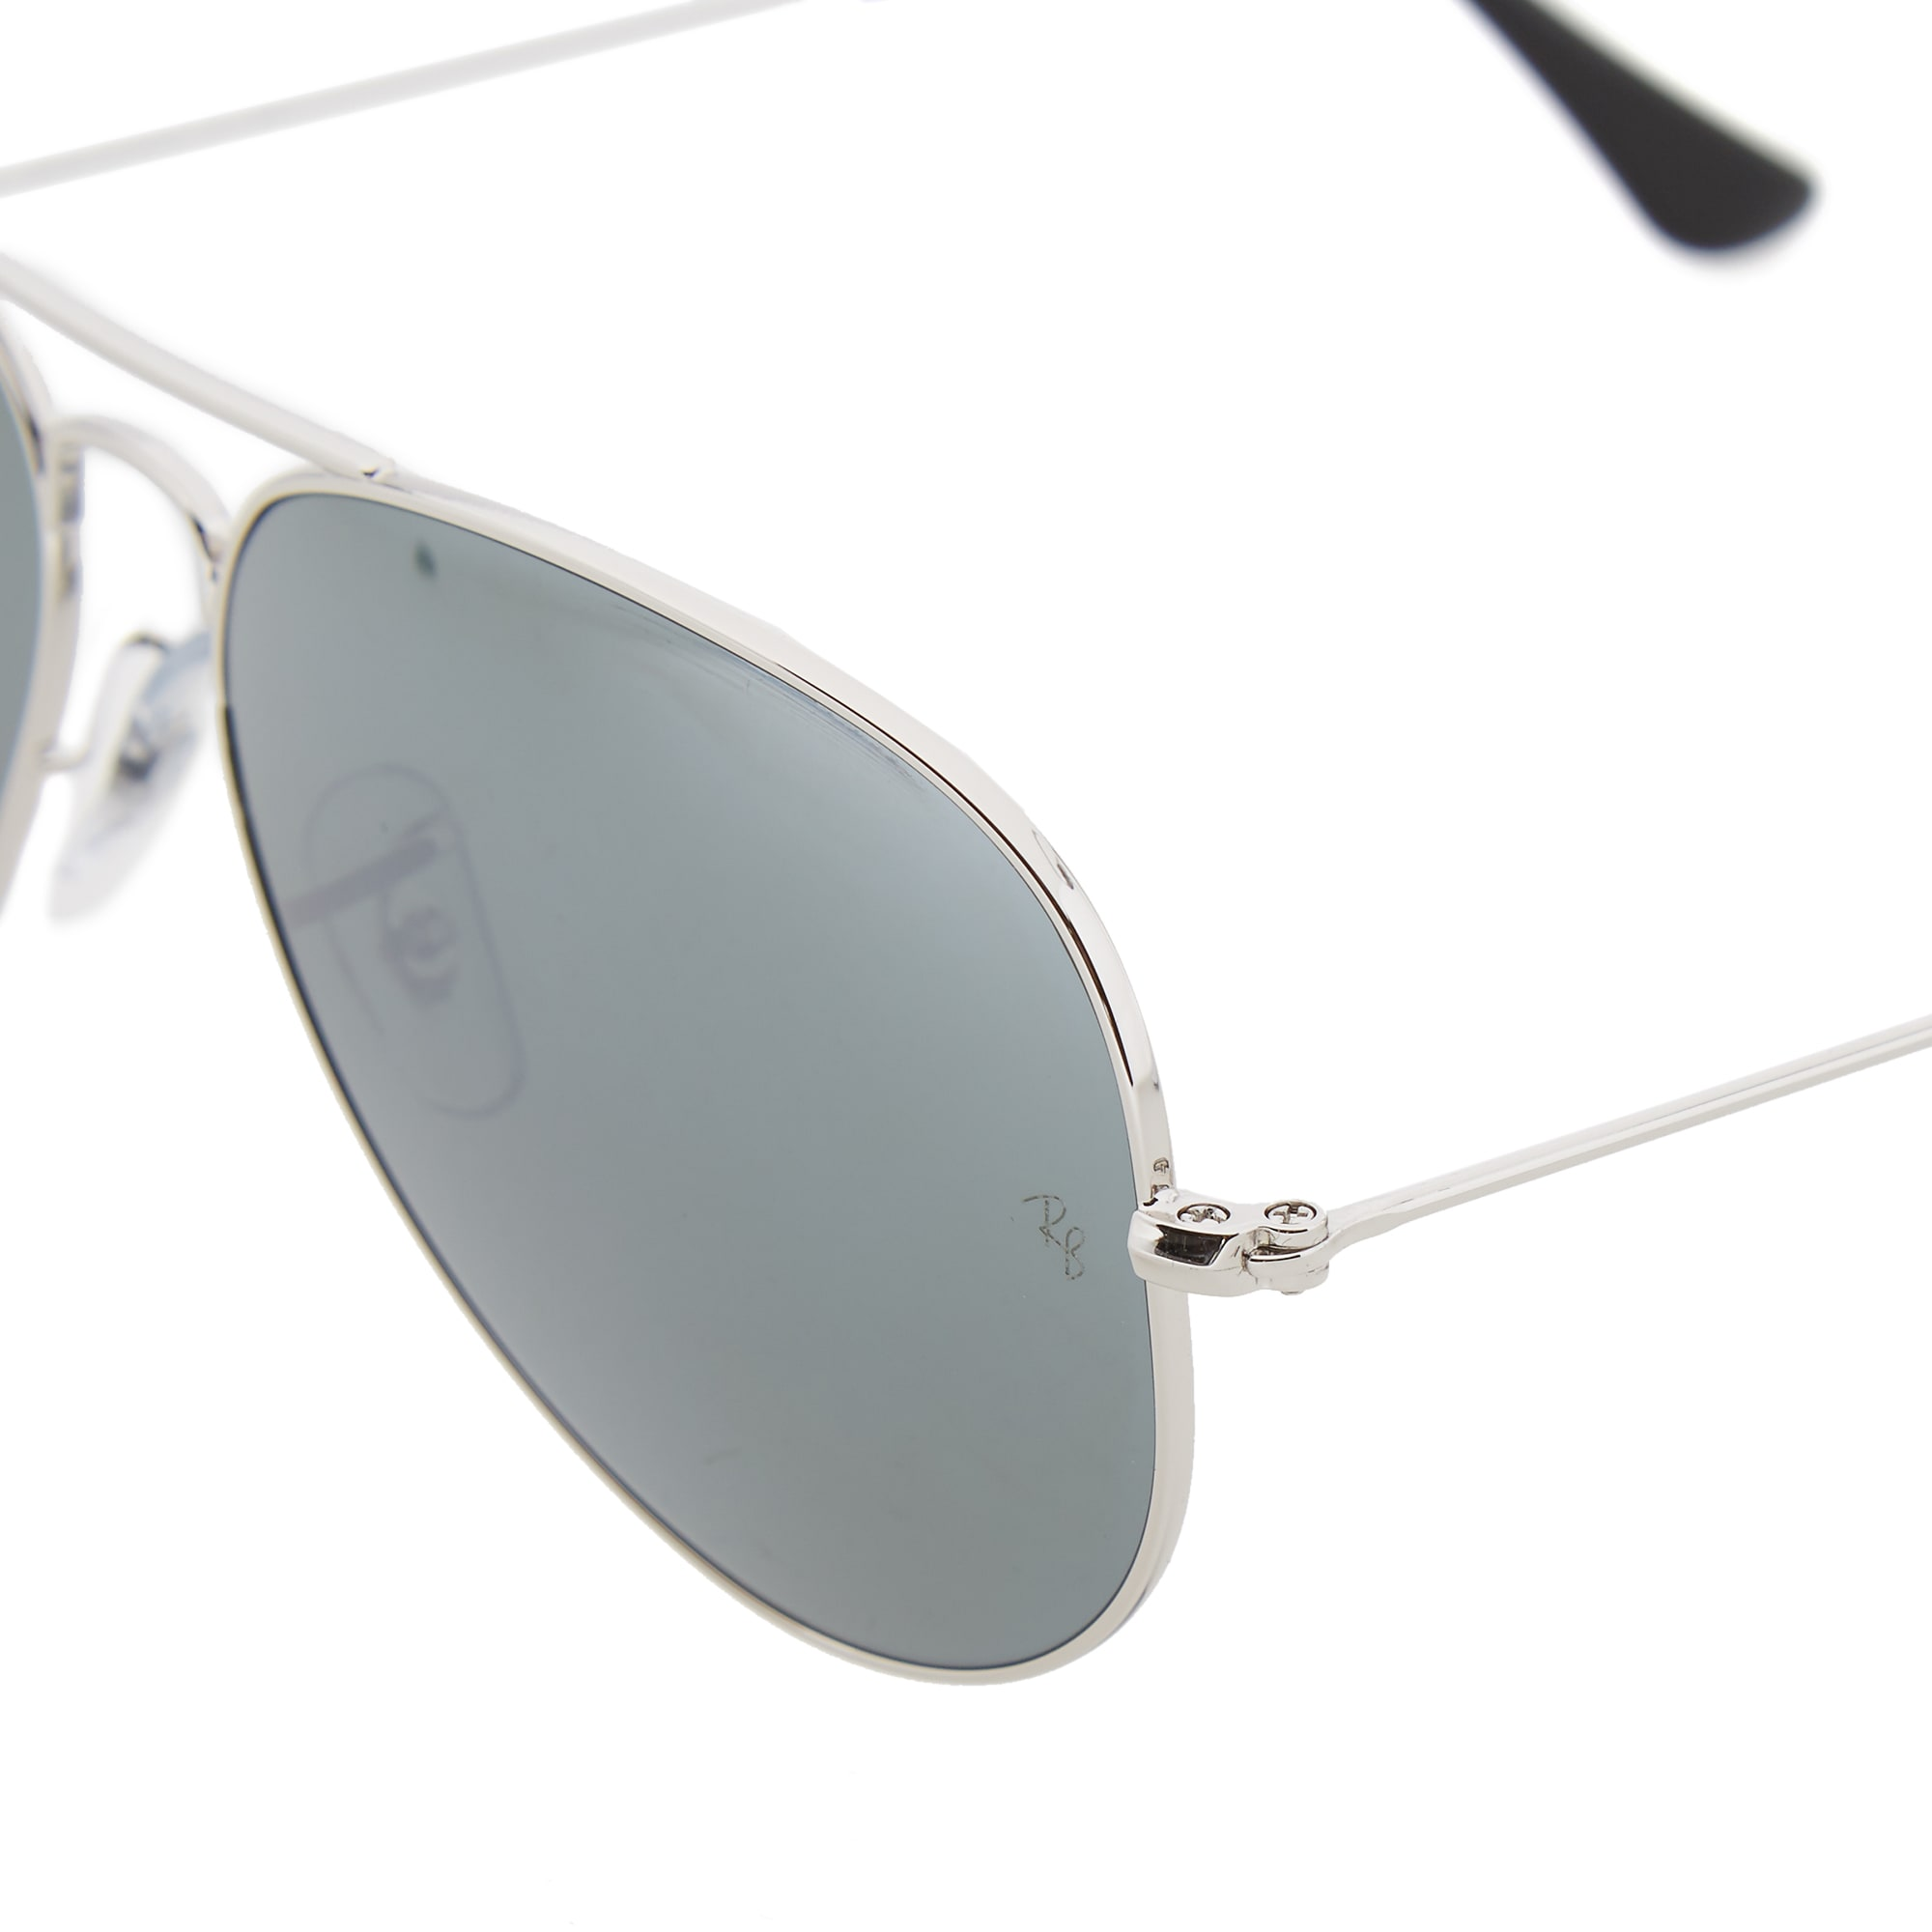 4b00b6d8277 Ray Ban Aviator Sunglasses Silver Crystal Mirror Silver